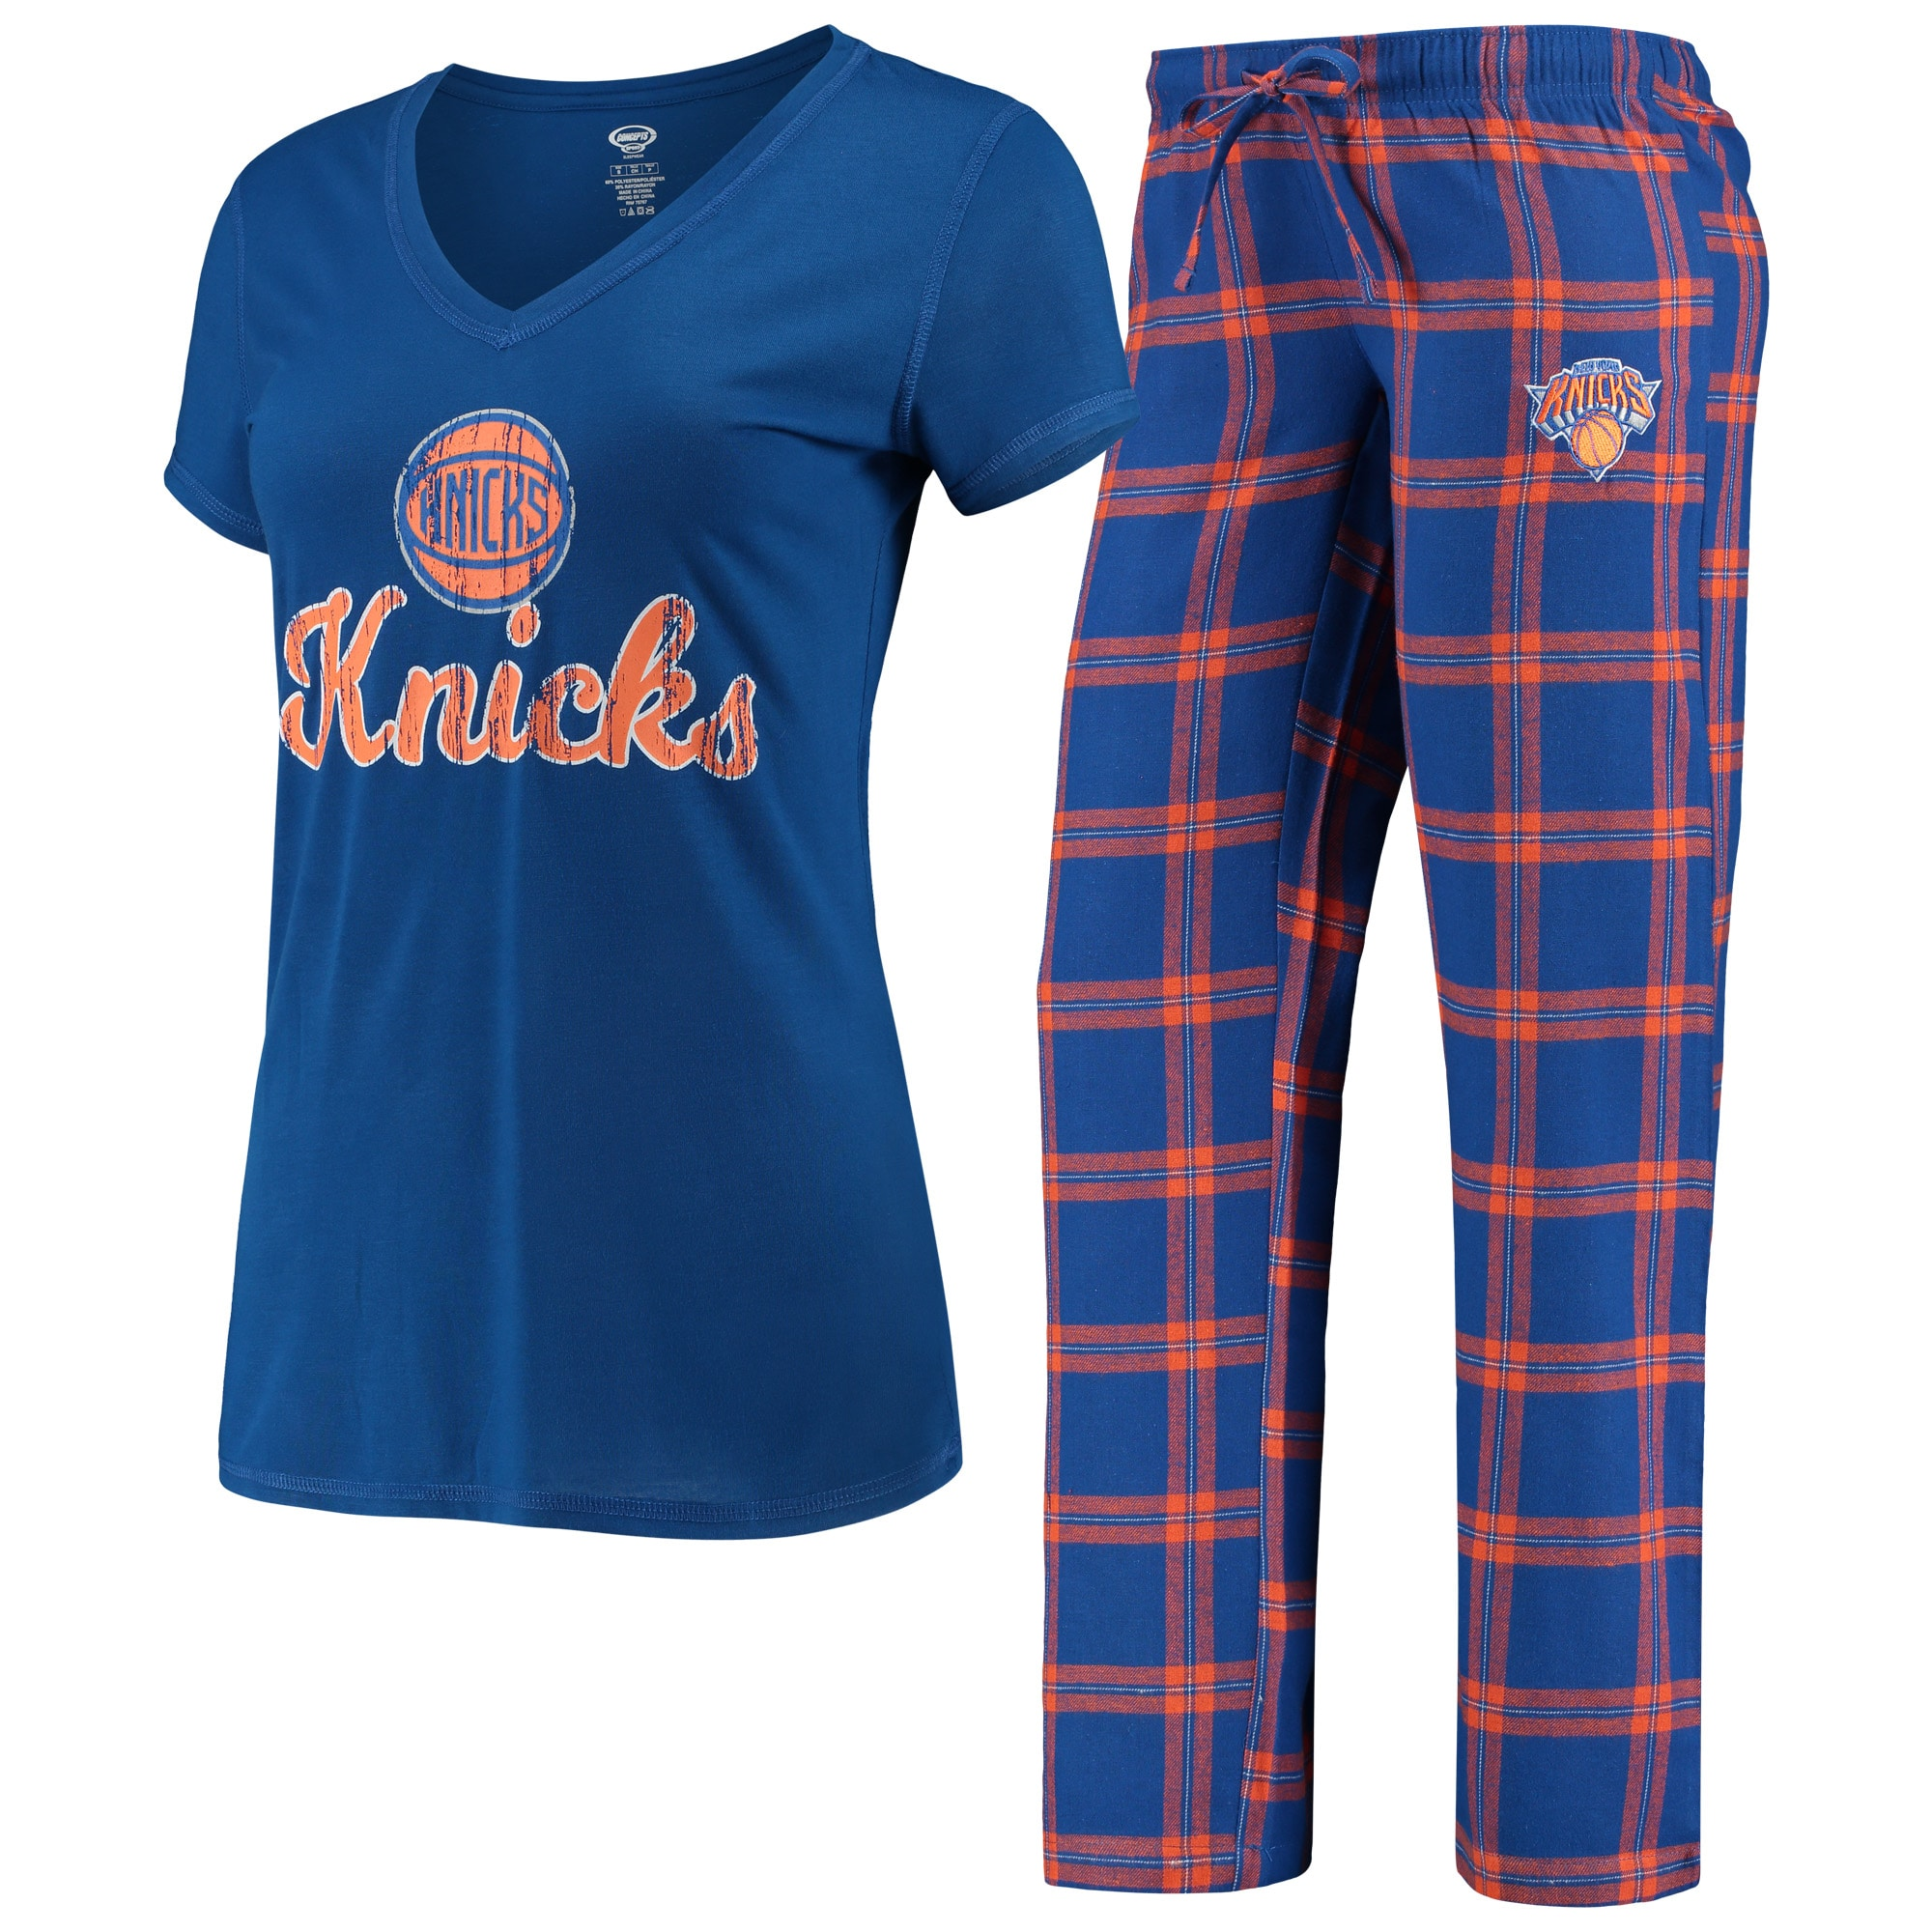 New York Knicks Concepts Sport Women's Troupe V-Neck T-Shirt & Pants Sleep Set - Blue